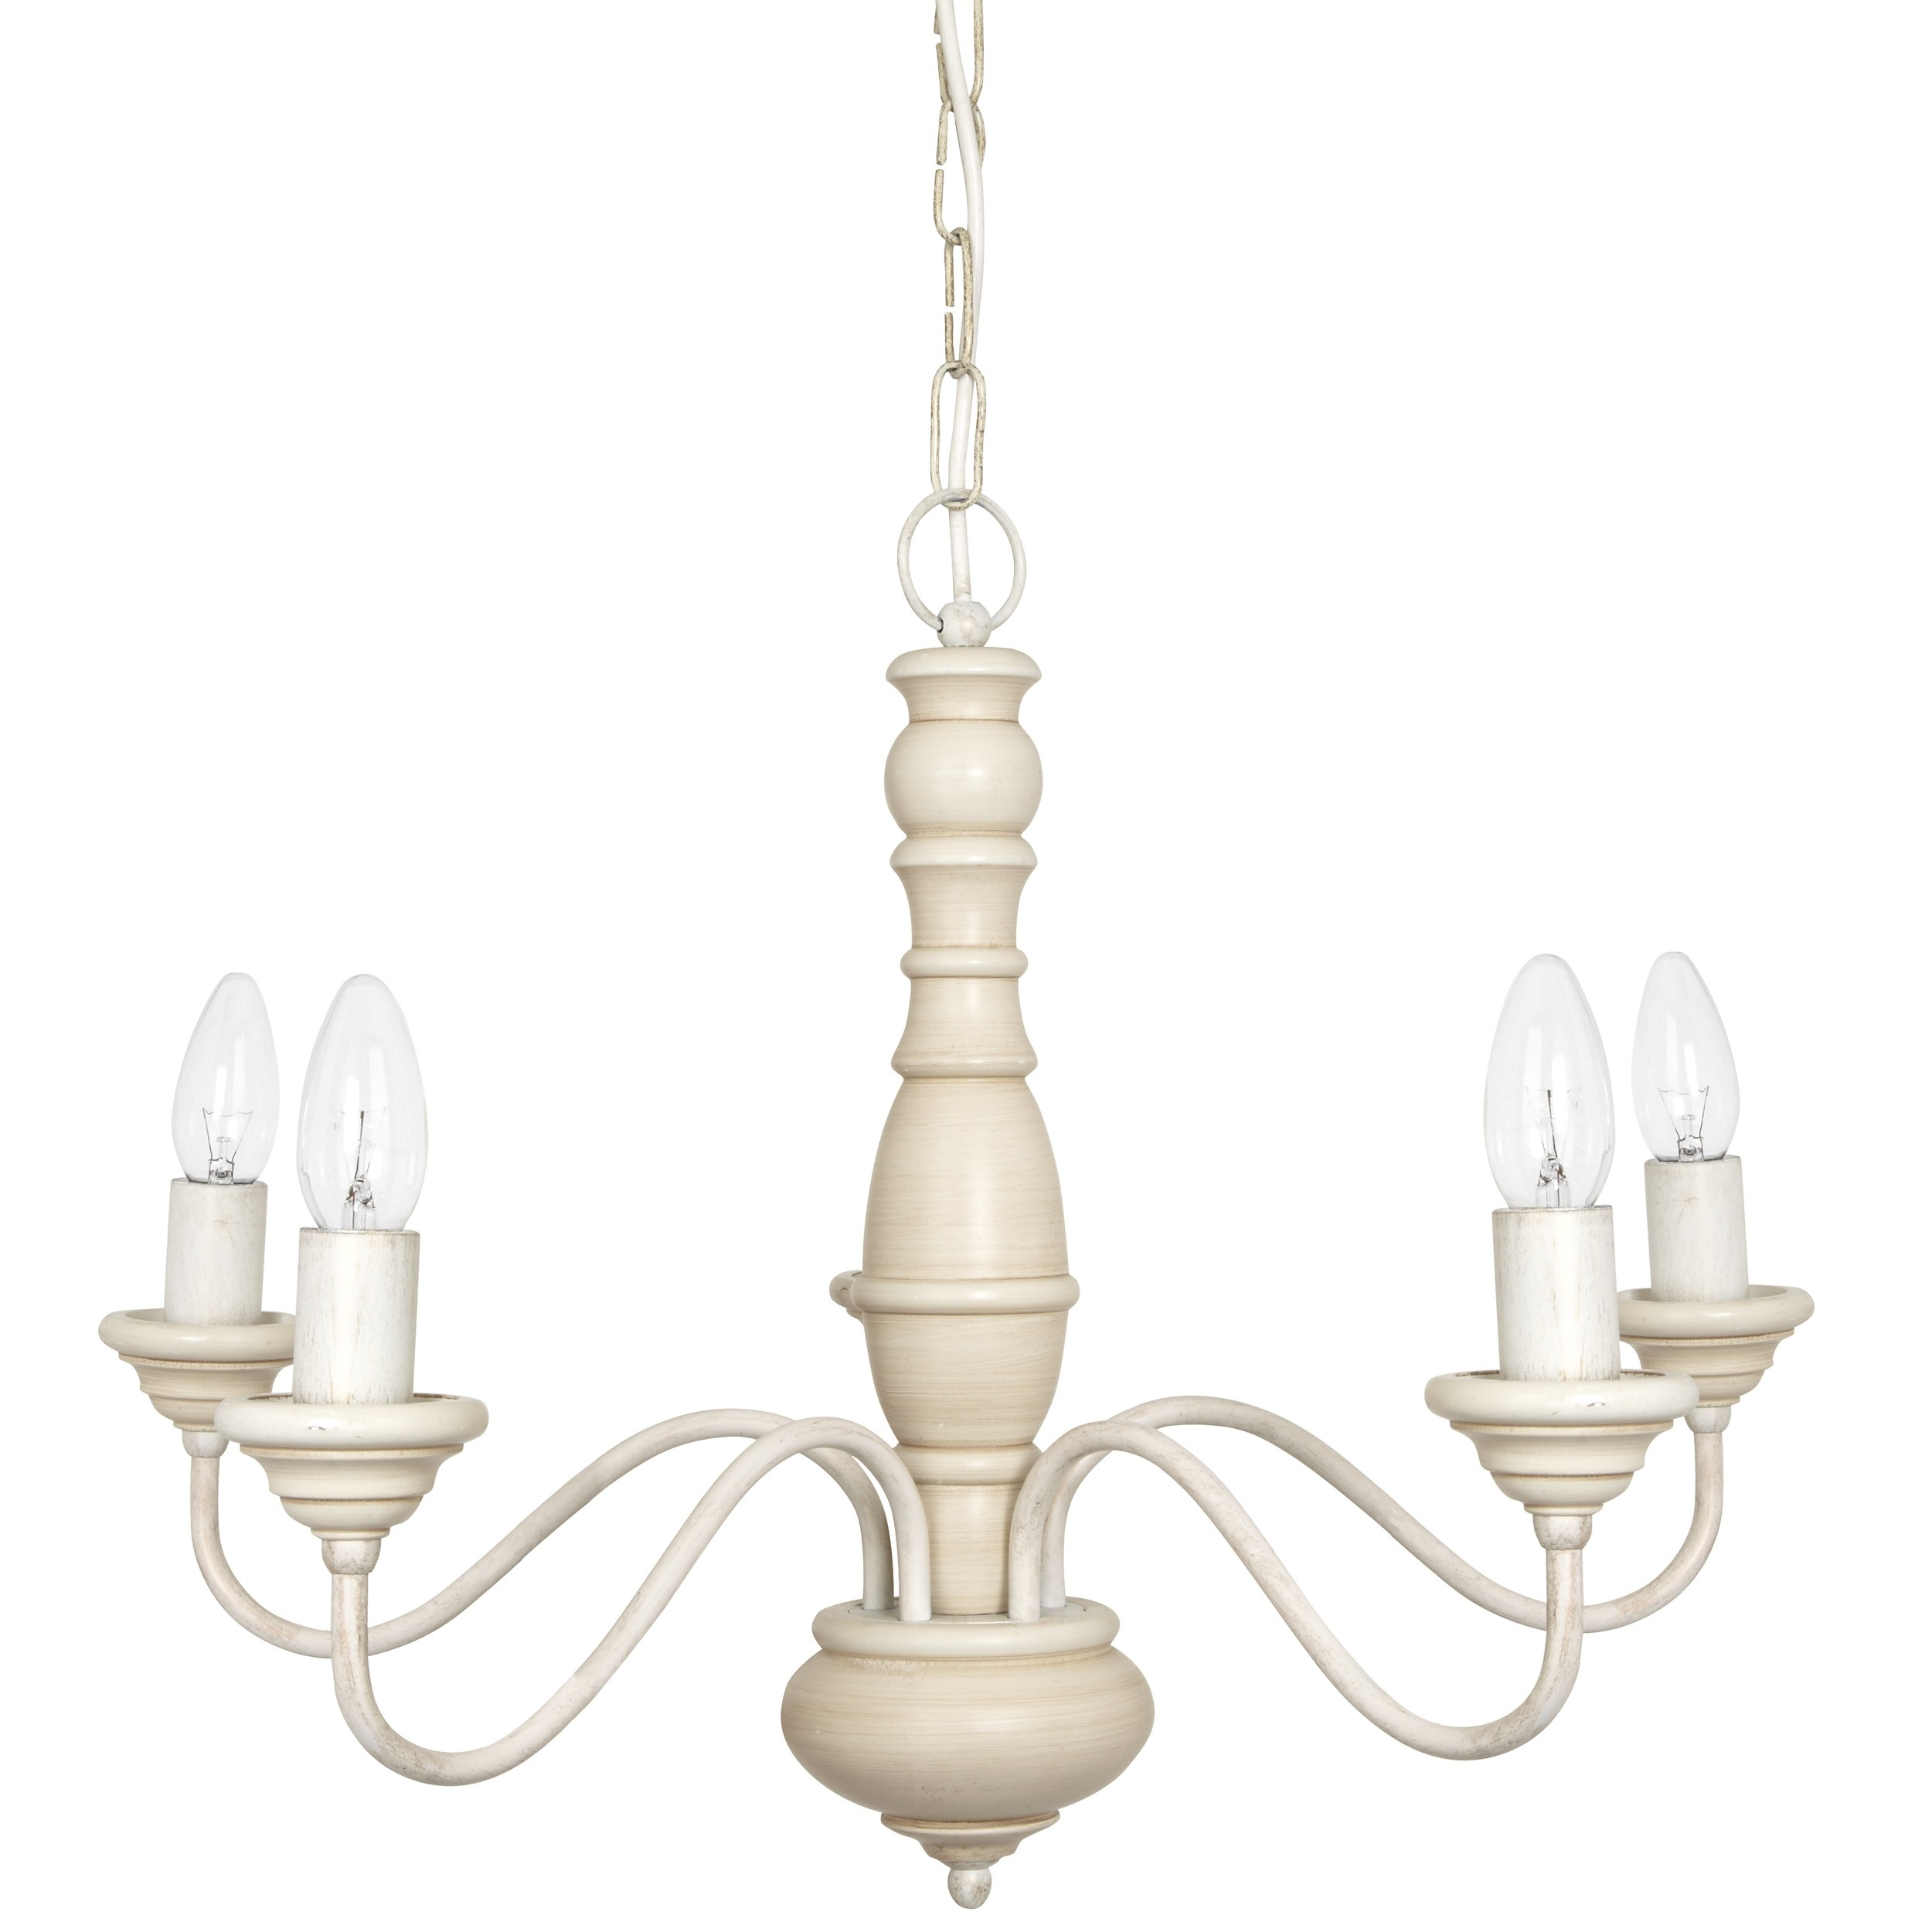 Milnsbridge Cream 5 Light Chandelier At Laura Ashley With Regard To Cream Chandeliers (Image 13 of 15)